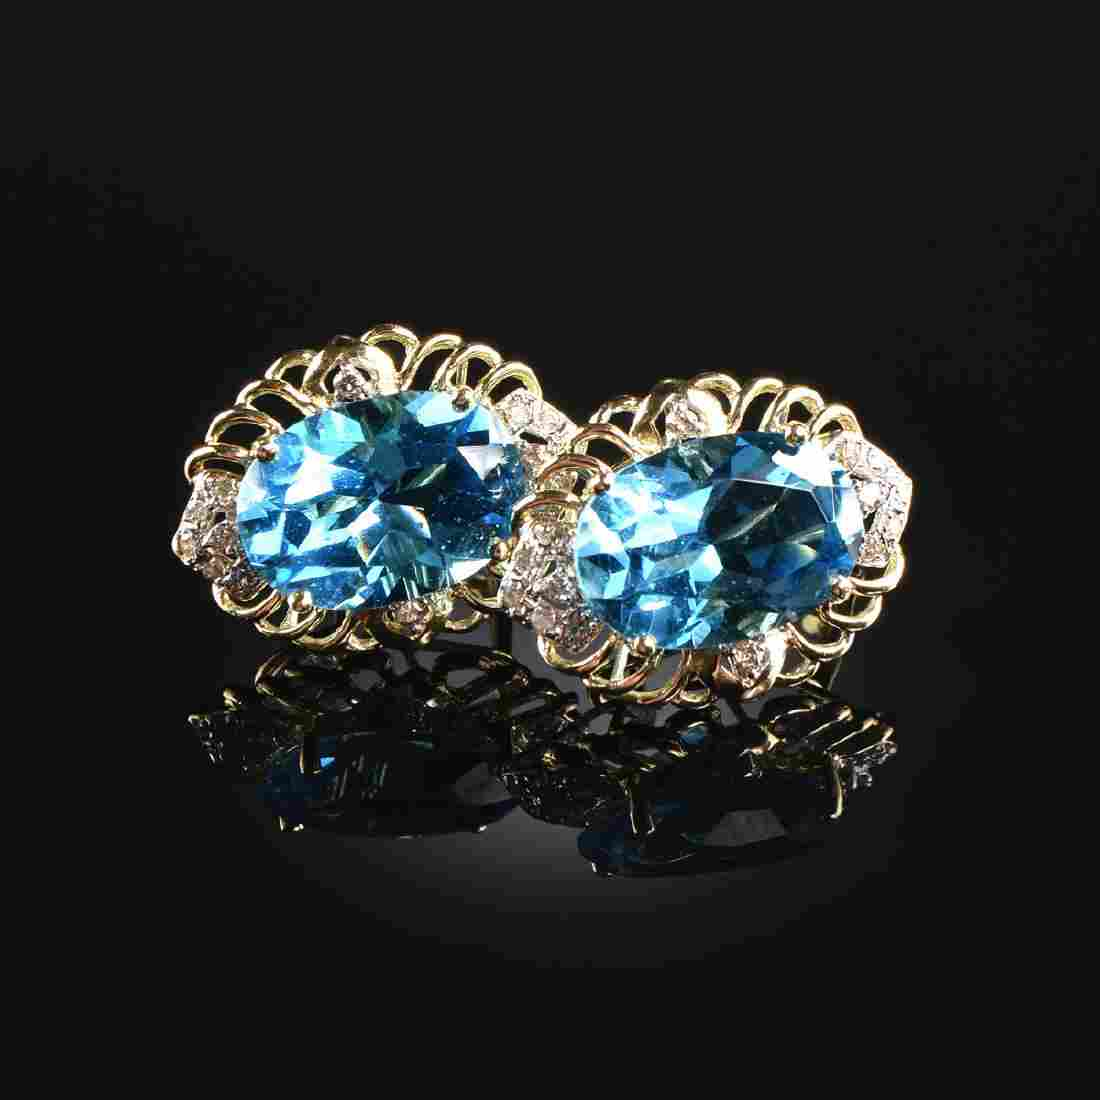 A PAIR OF 14K YELLOW GOLD, WHITE GOLD, BLUE TOPAZ, AND